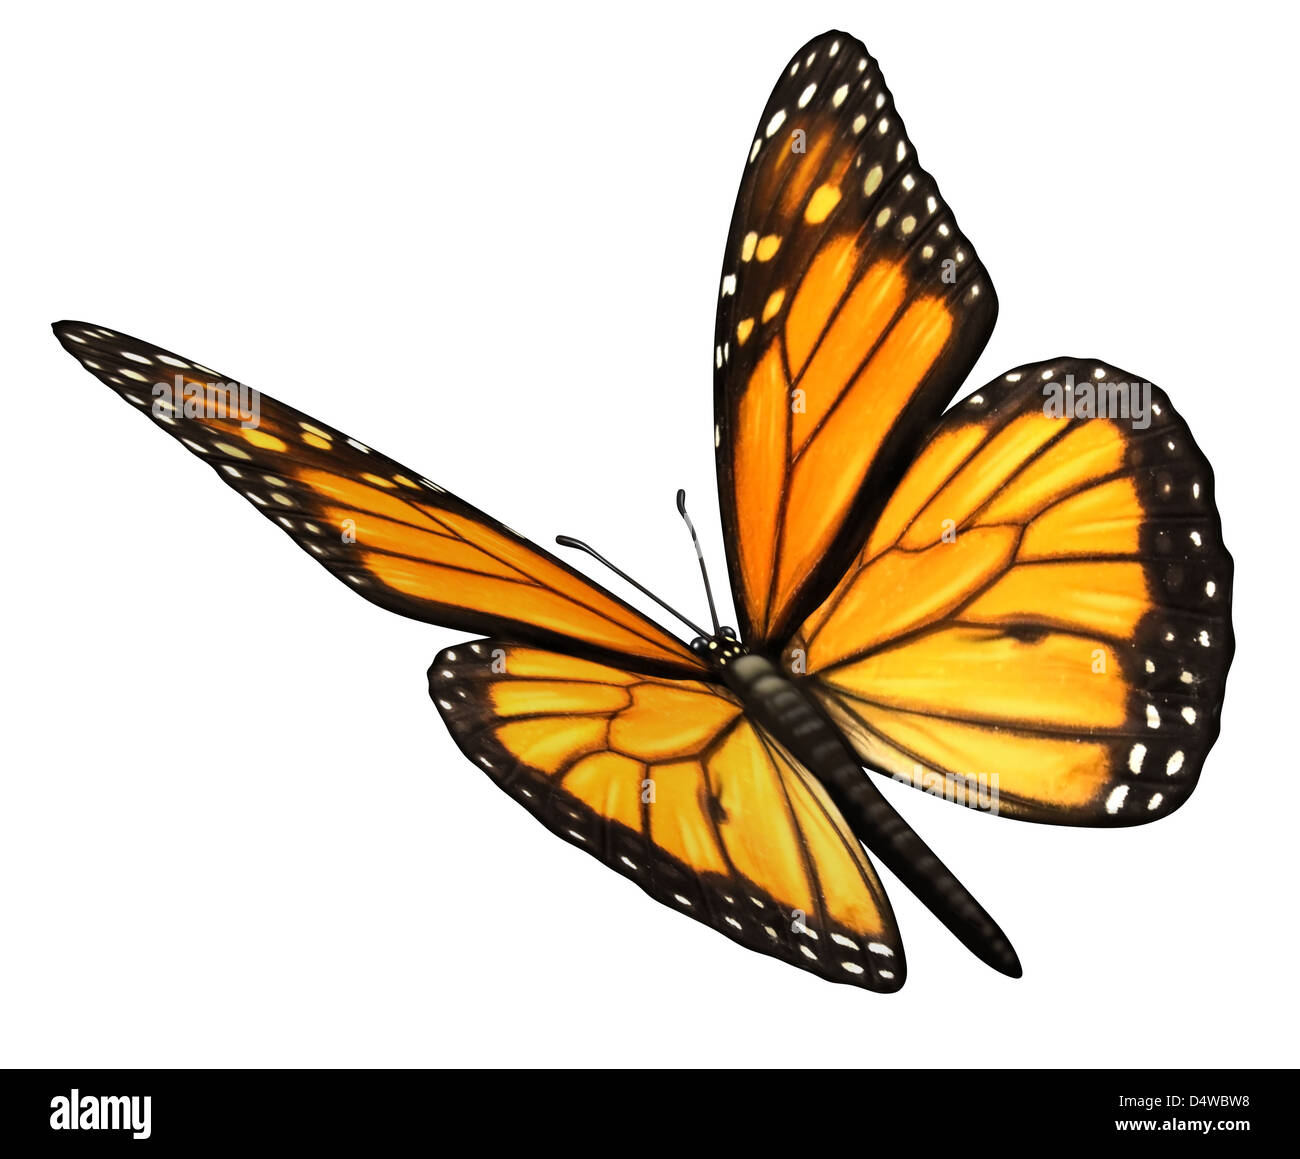 Monarch Butterfly isolated on a white background angled in a three quarter view with open wings as a natural symbol - Stock Image